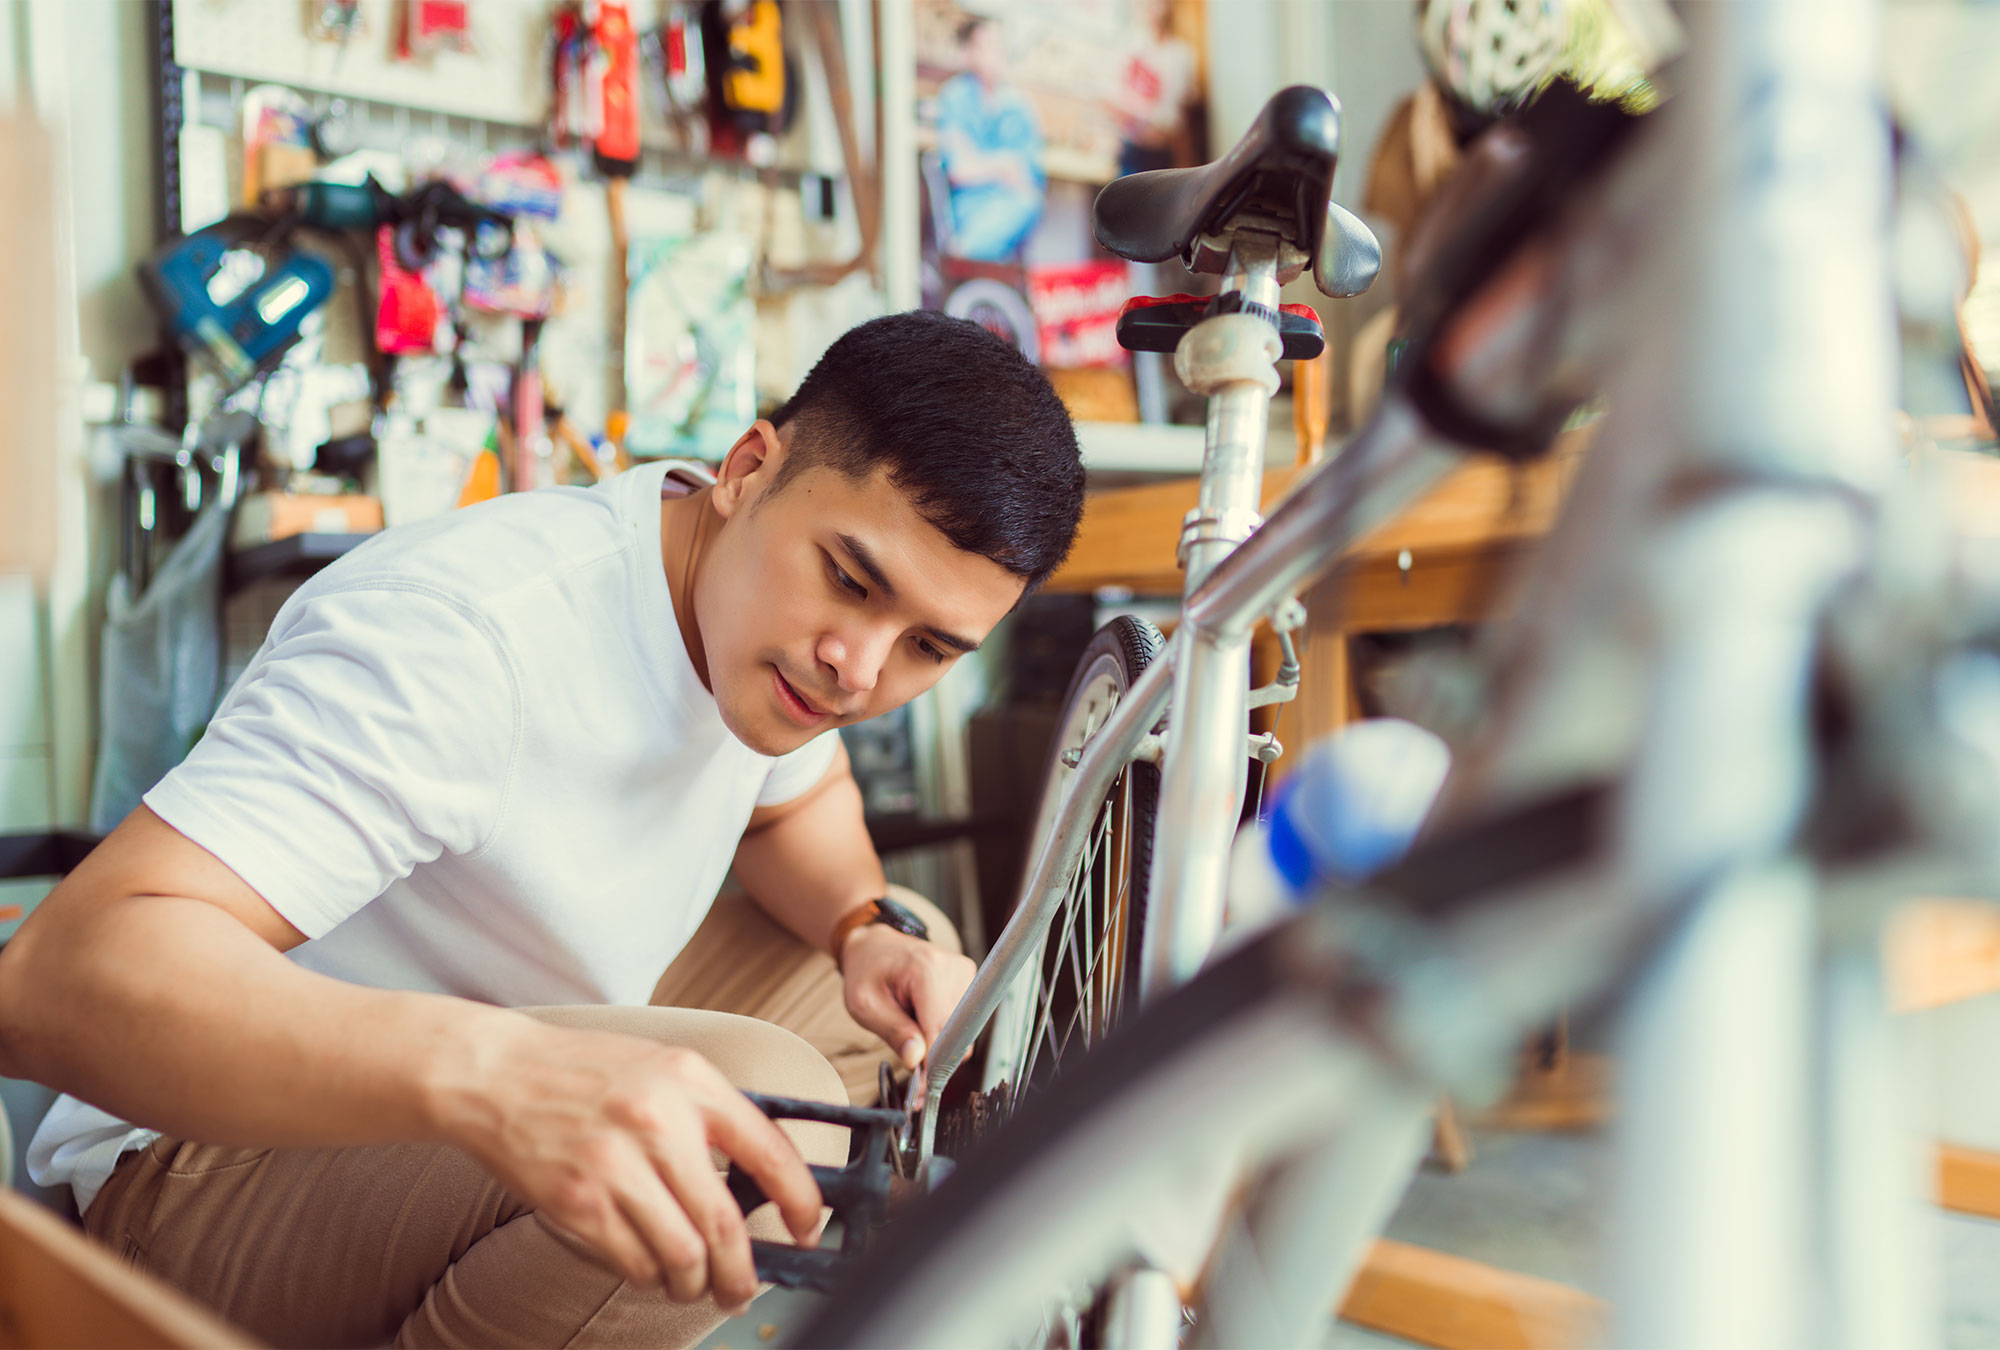 Young man works on a bike